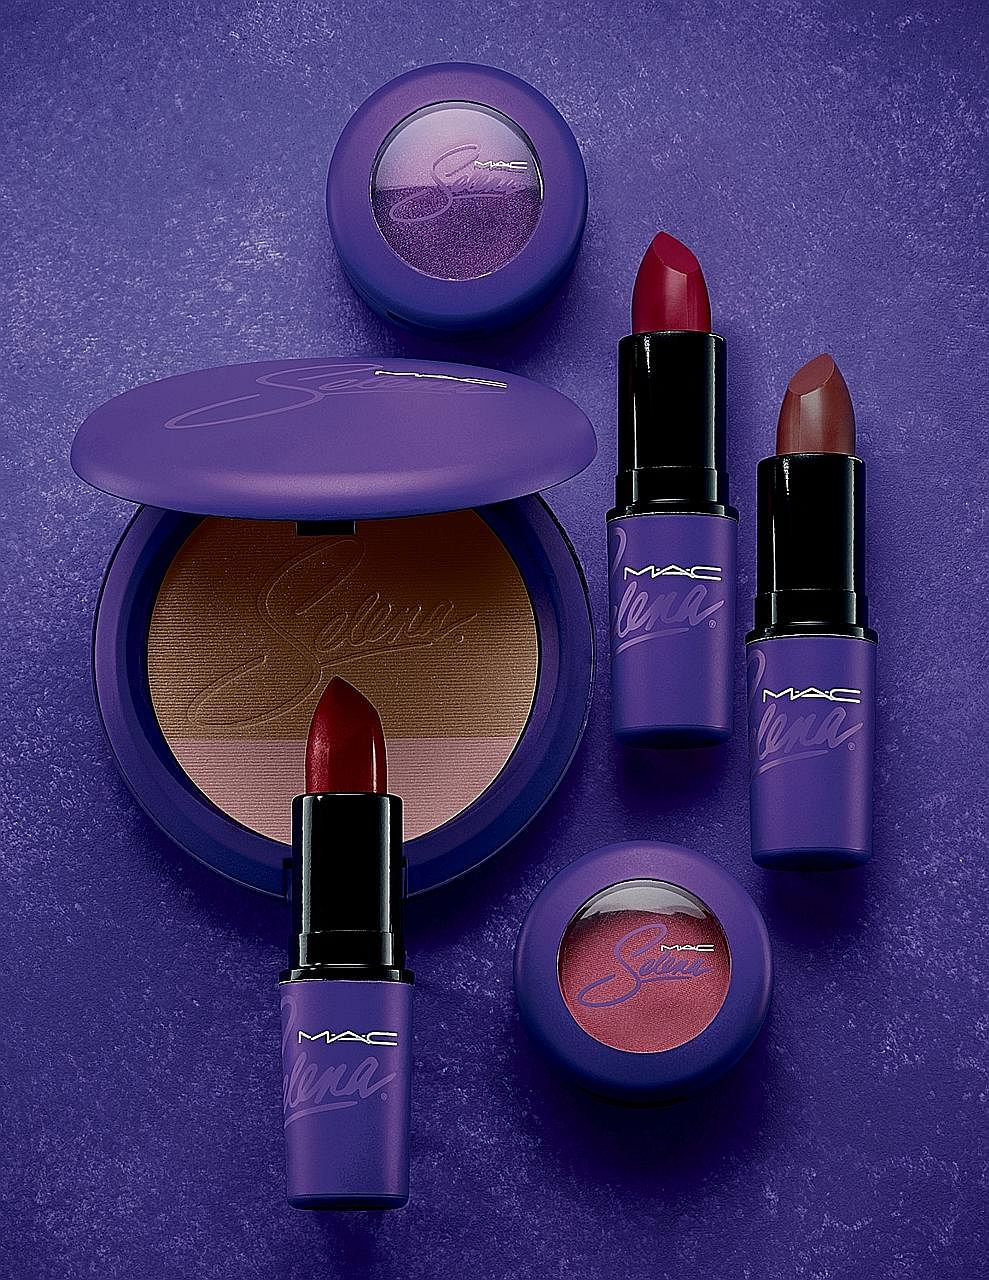 Items from the M.A.C Selena make-up collection, inspired by the late singer Selena Quintanilla Perez.